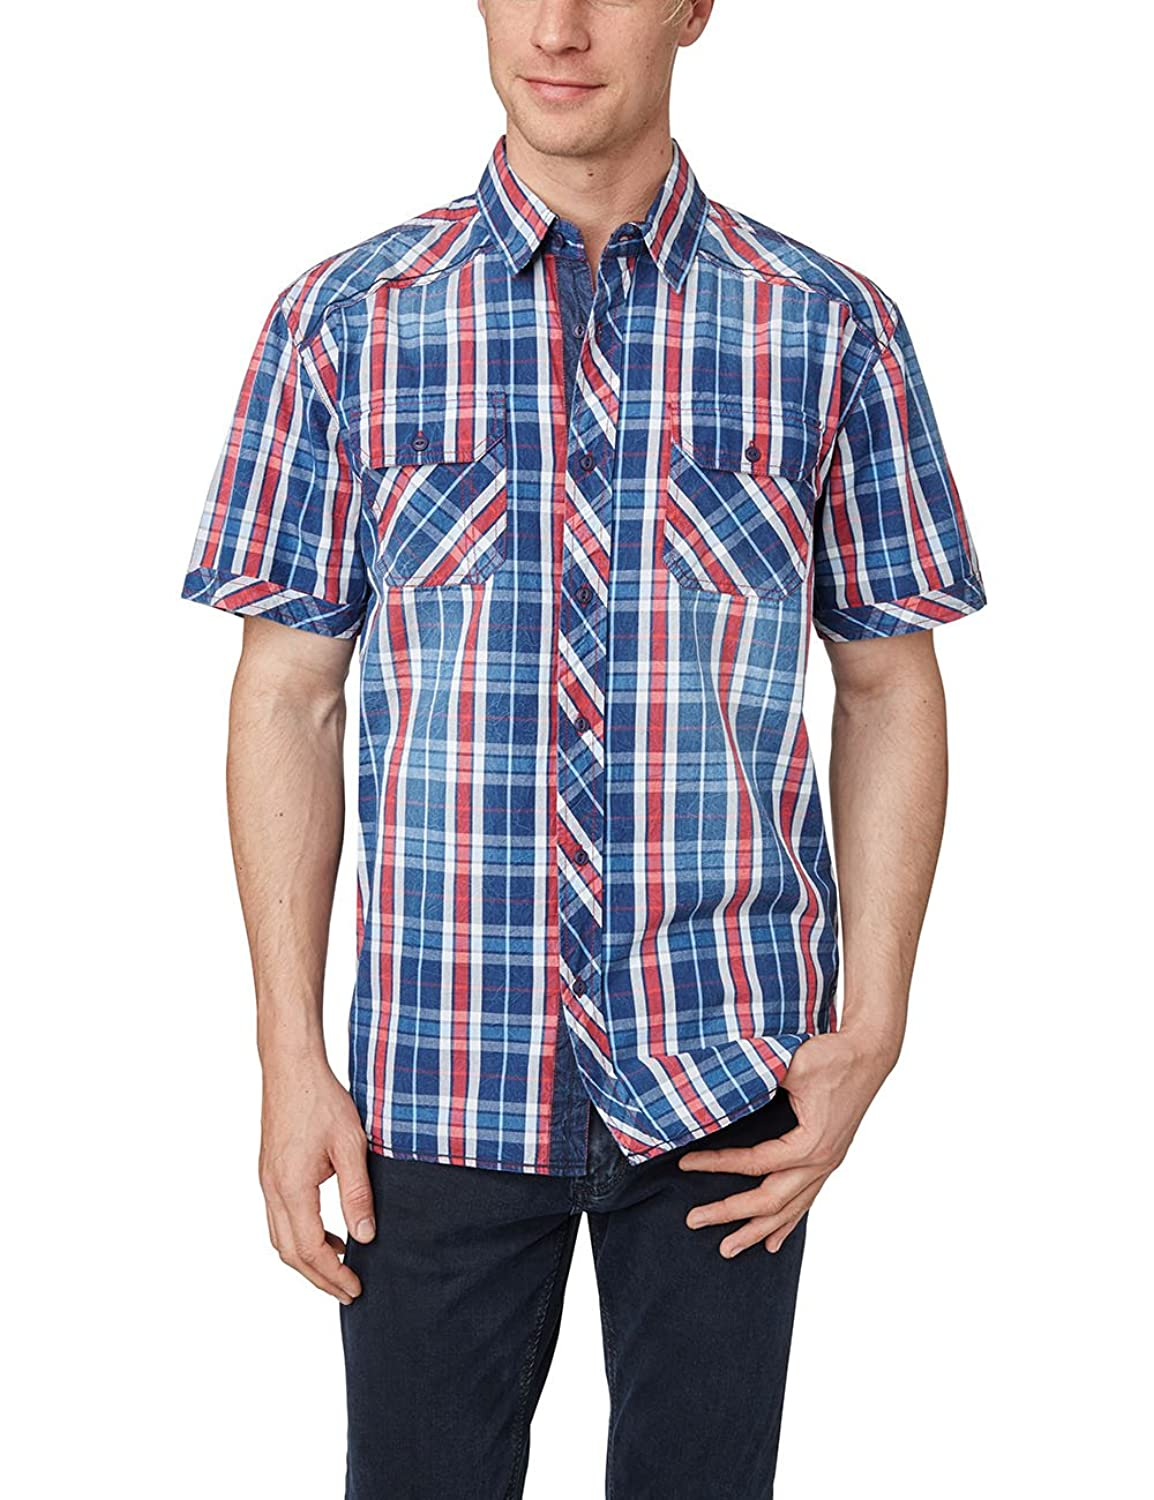 Pioneer Men's 7749 2699 Regular Fit